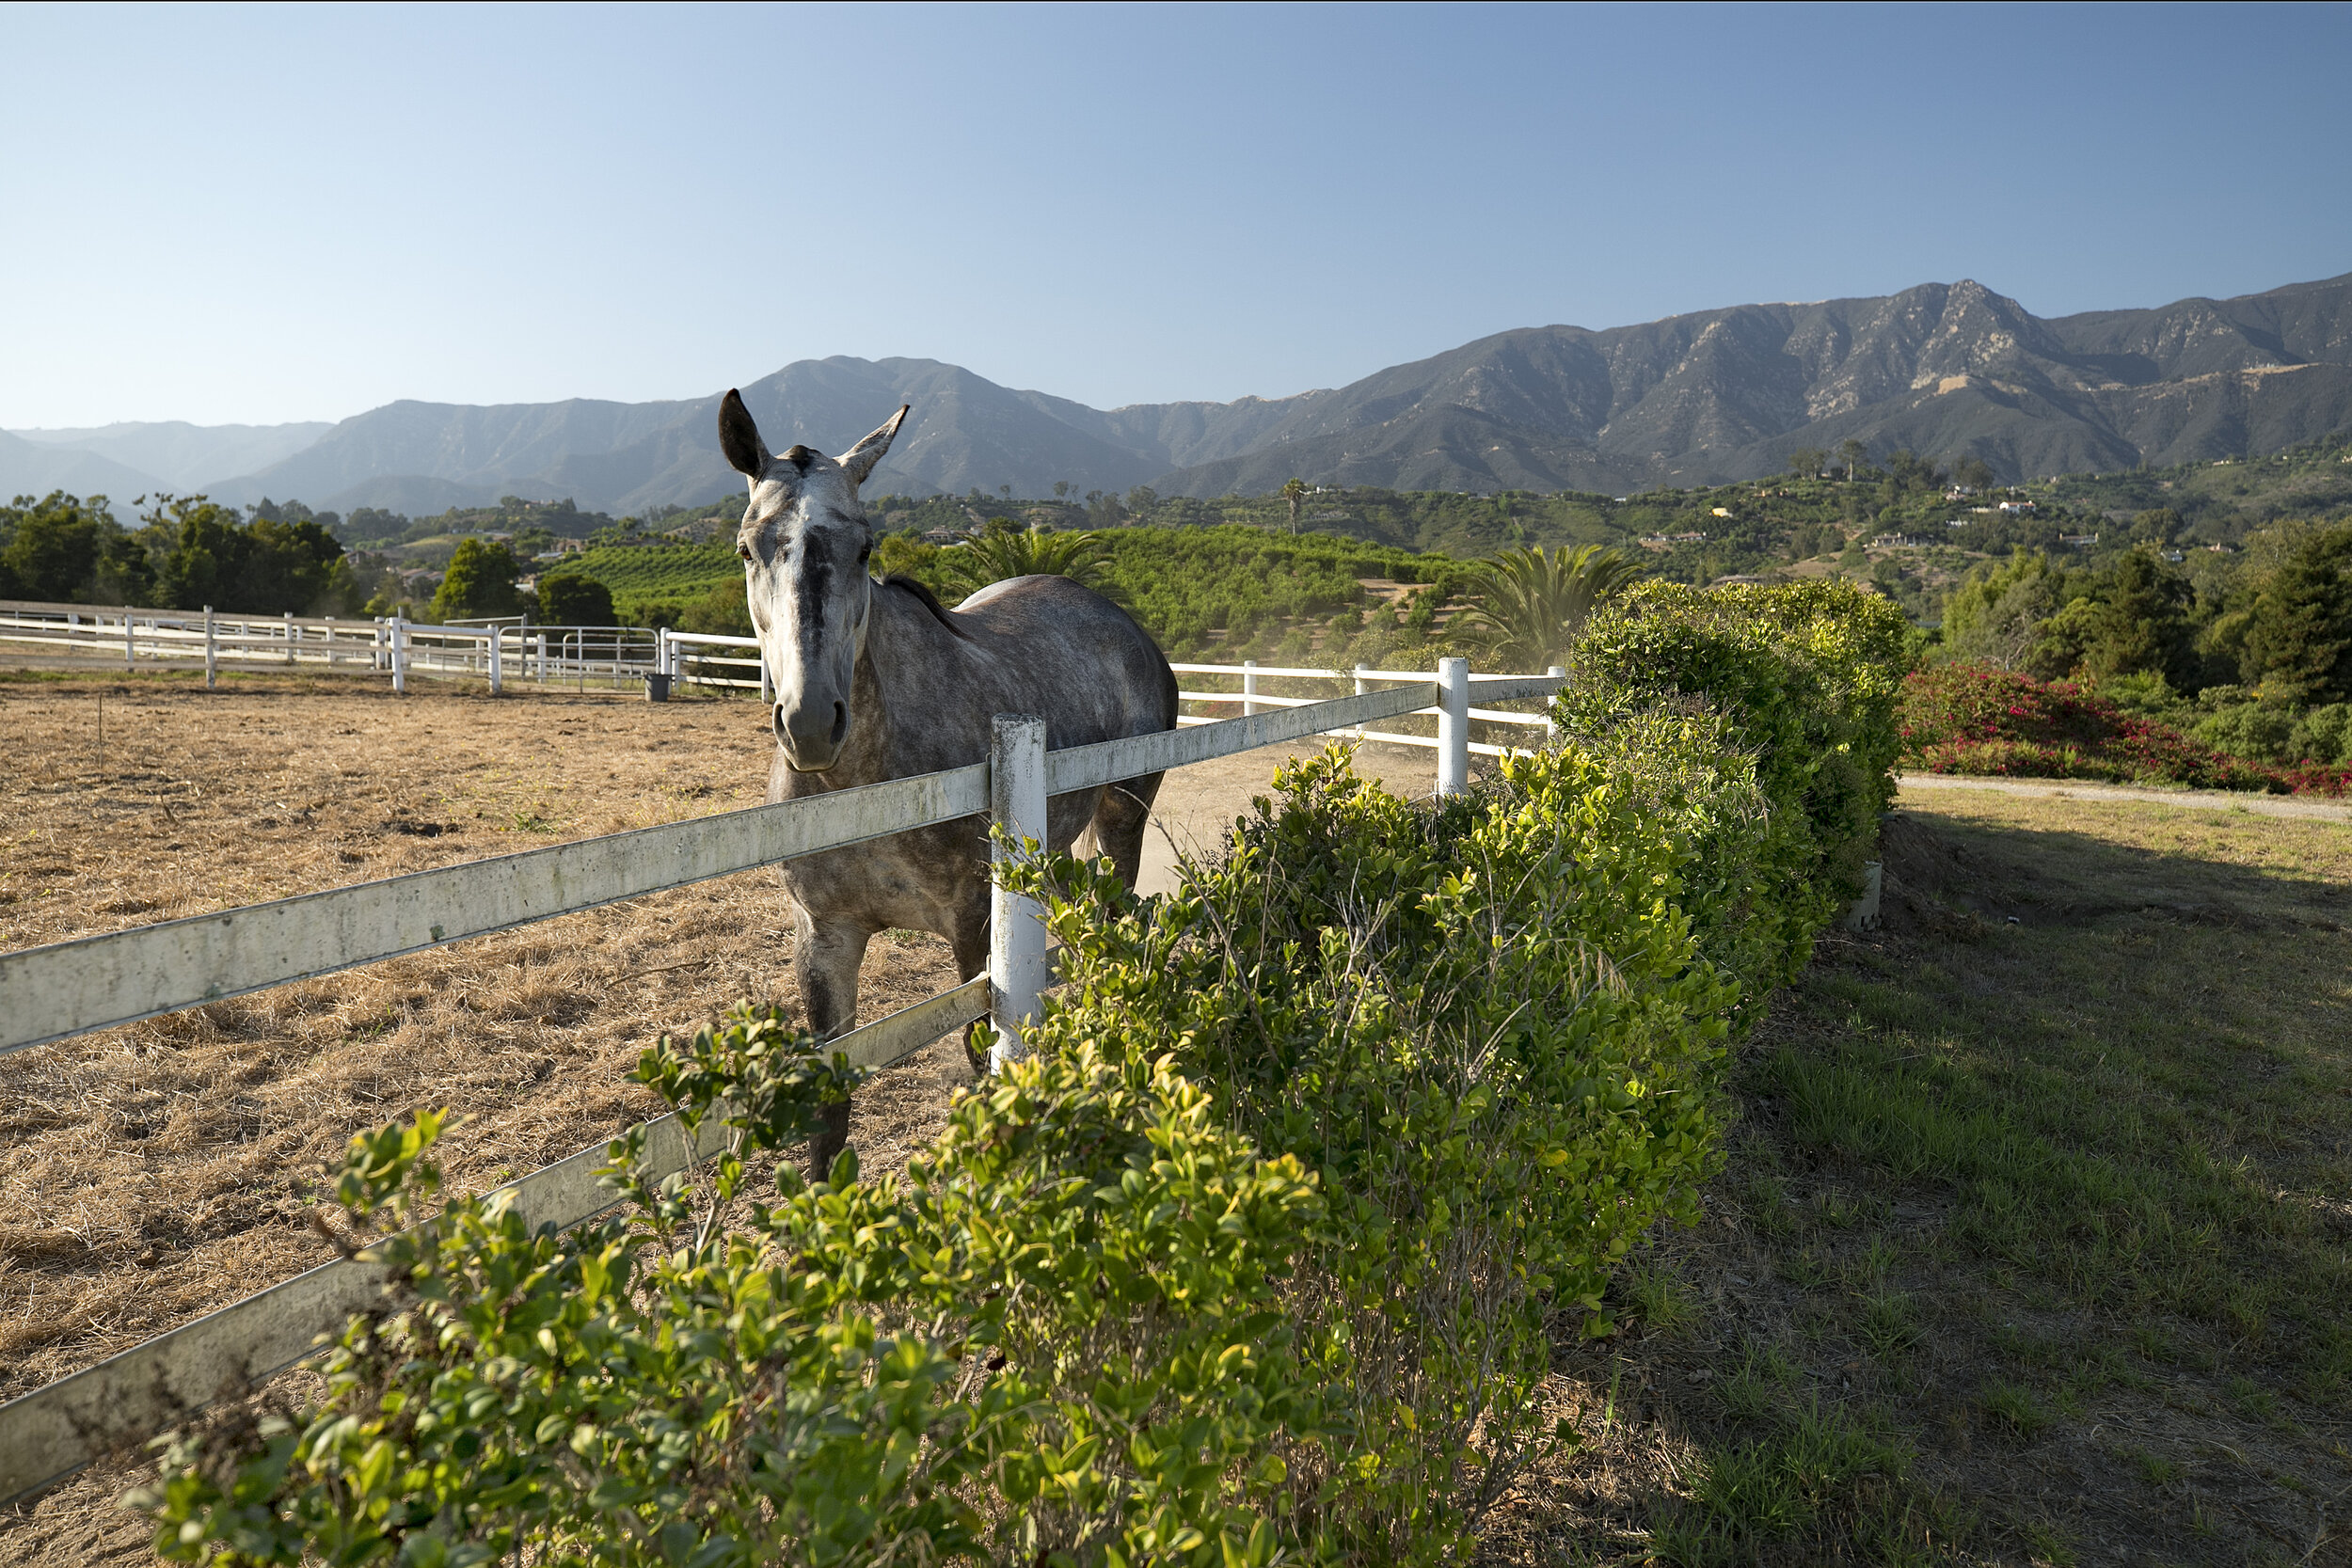 Tuscany Oaks Farm, Summerland - offered at $19,800,000